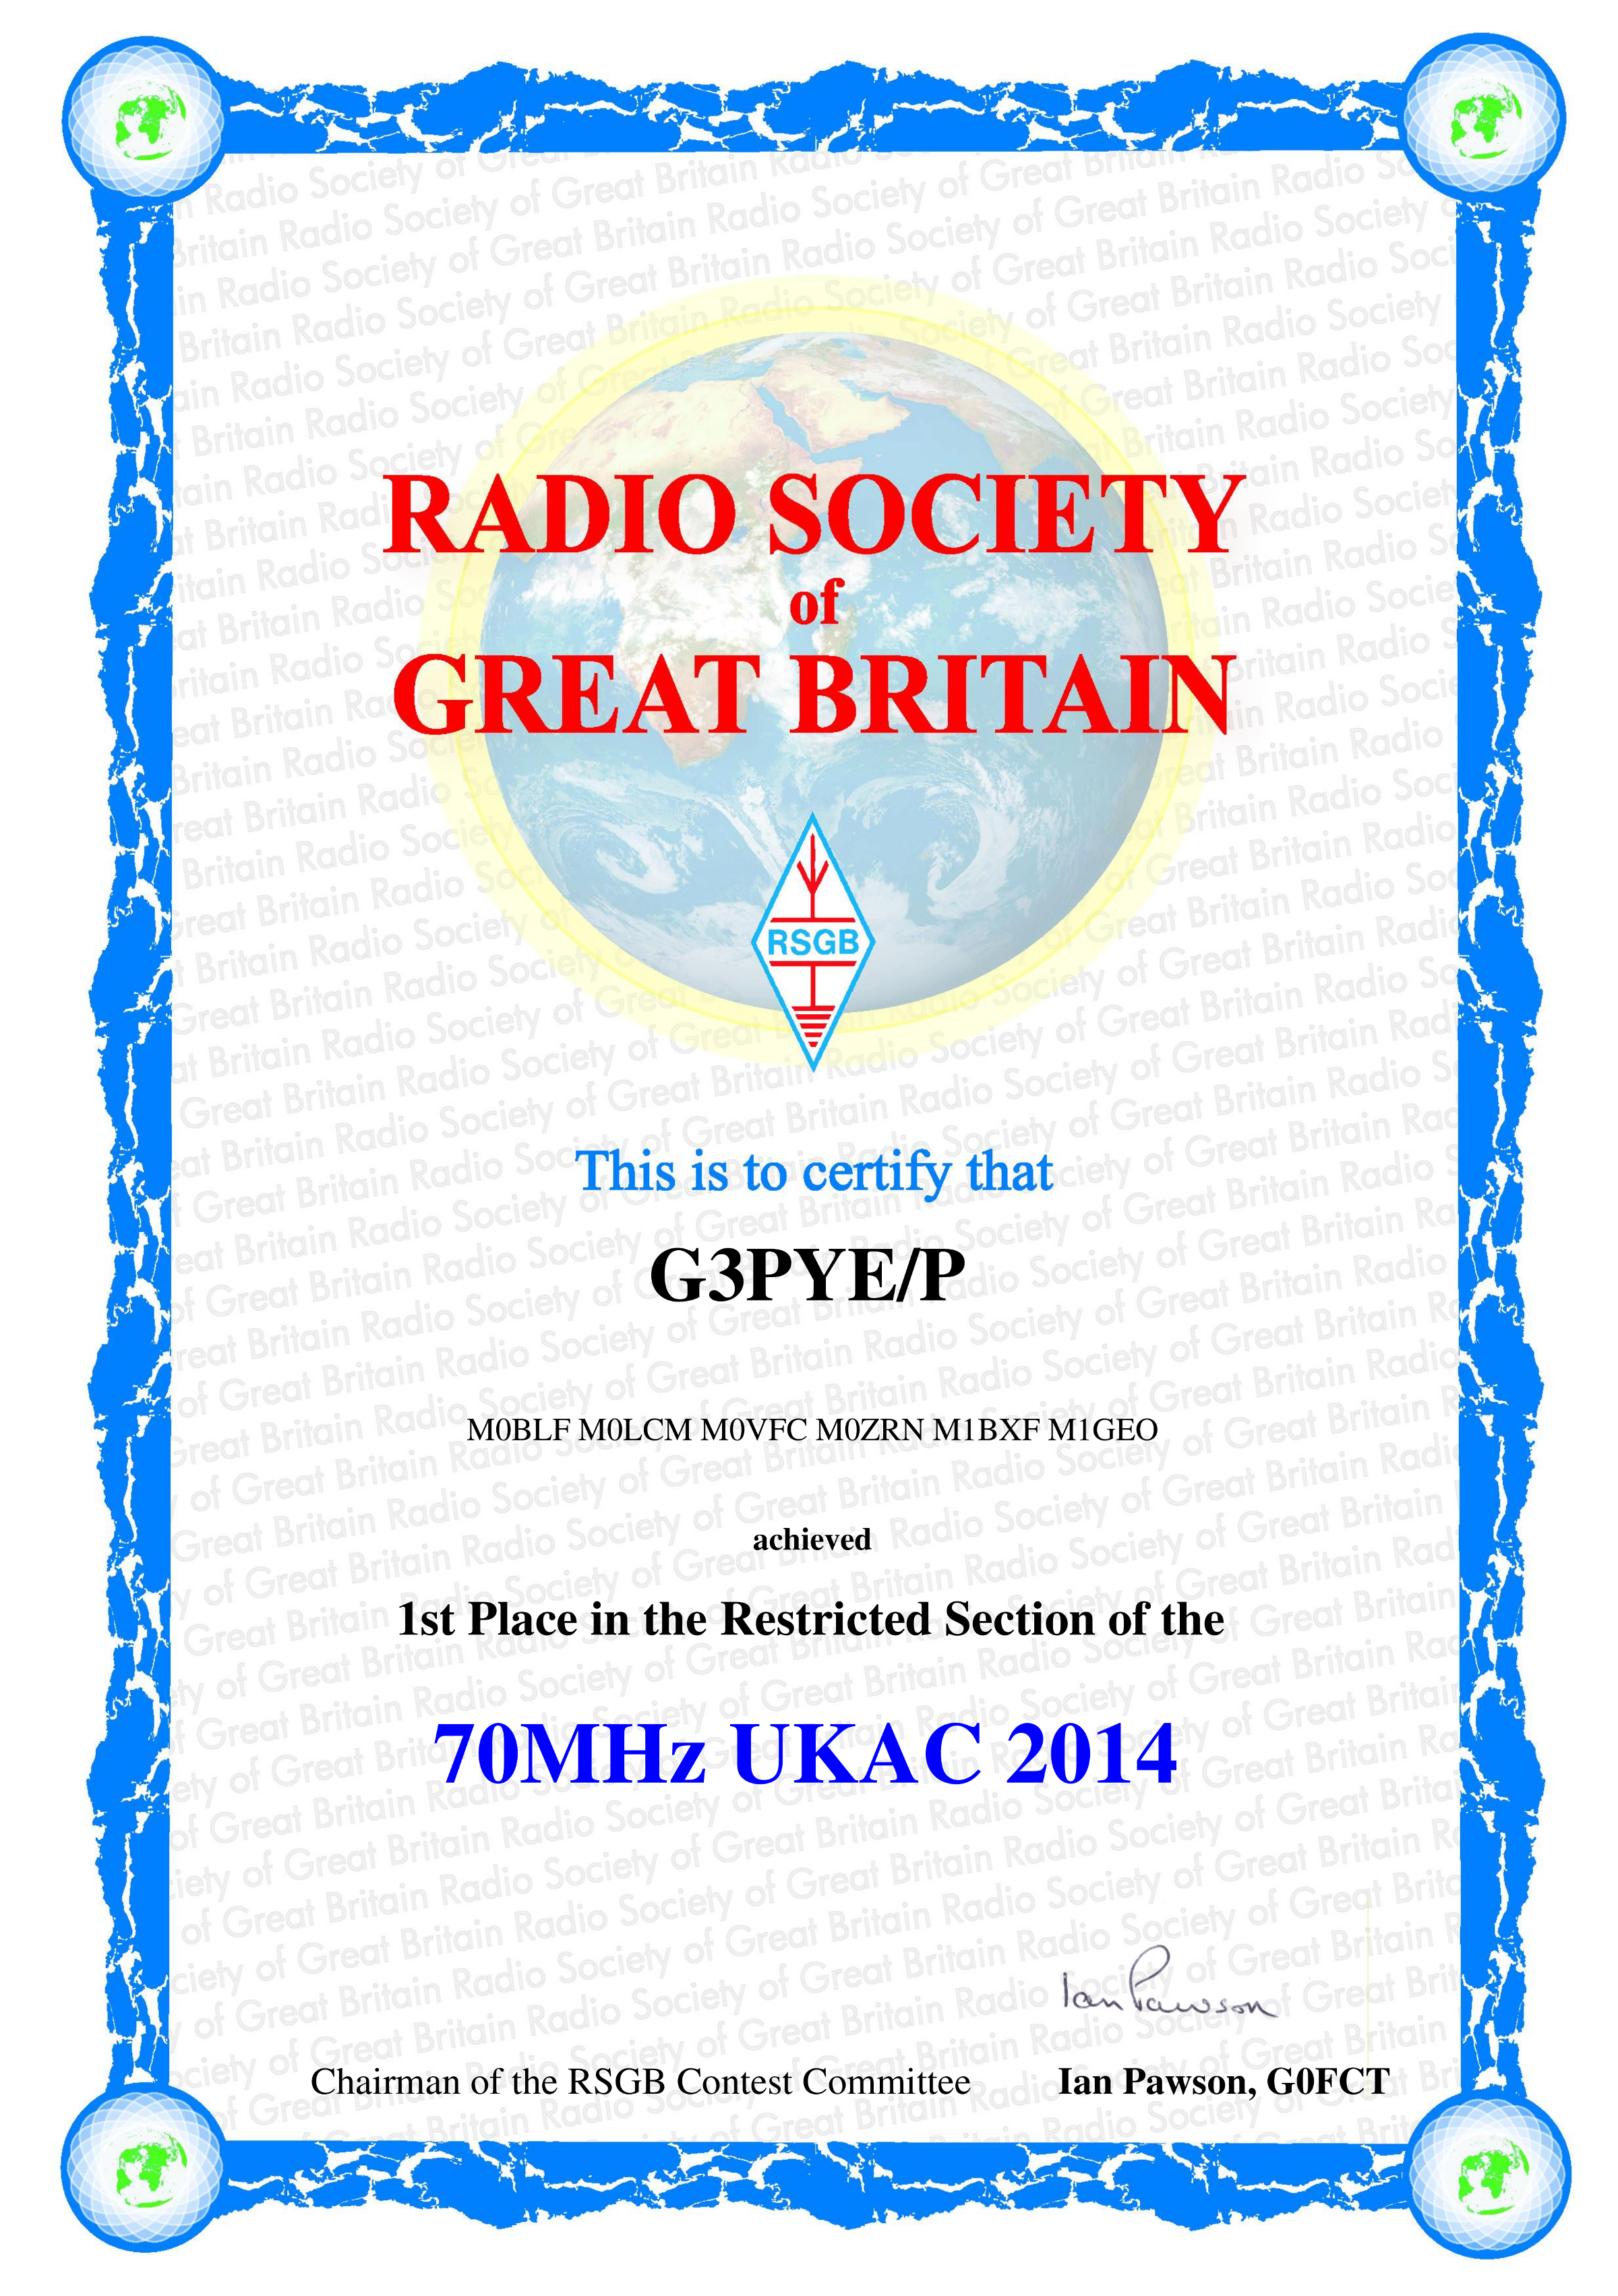 2nd Place for the 2014 50 MHz UKAC